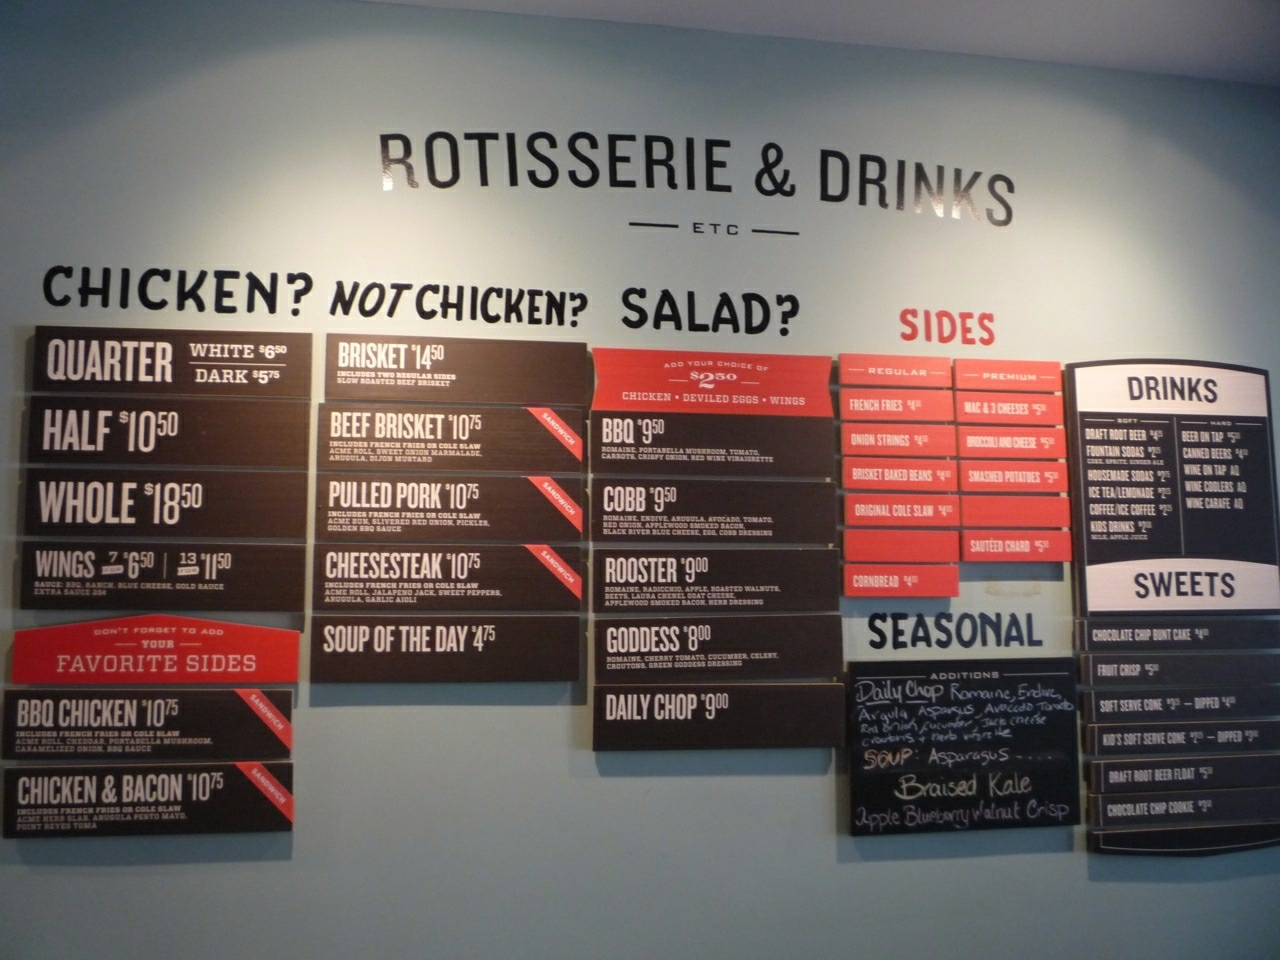 MENU-roostertail-interior_9353169851_o.jpg